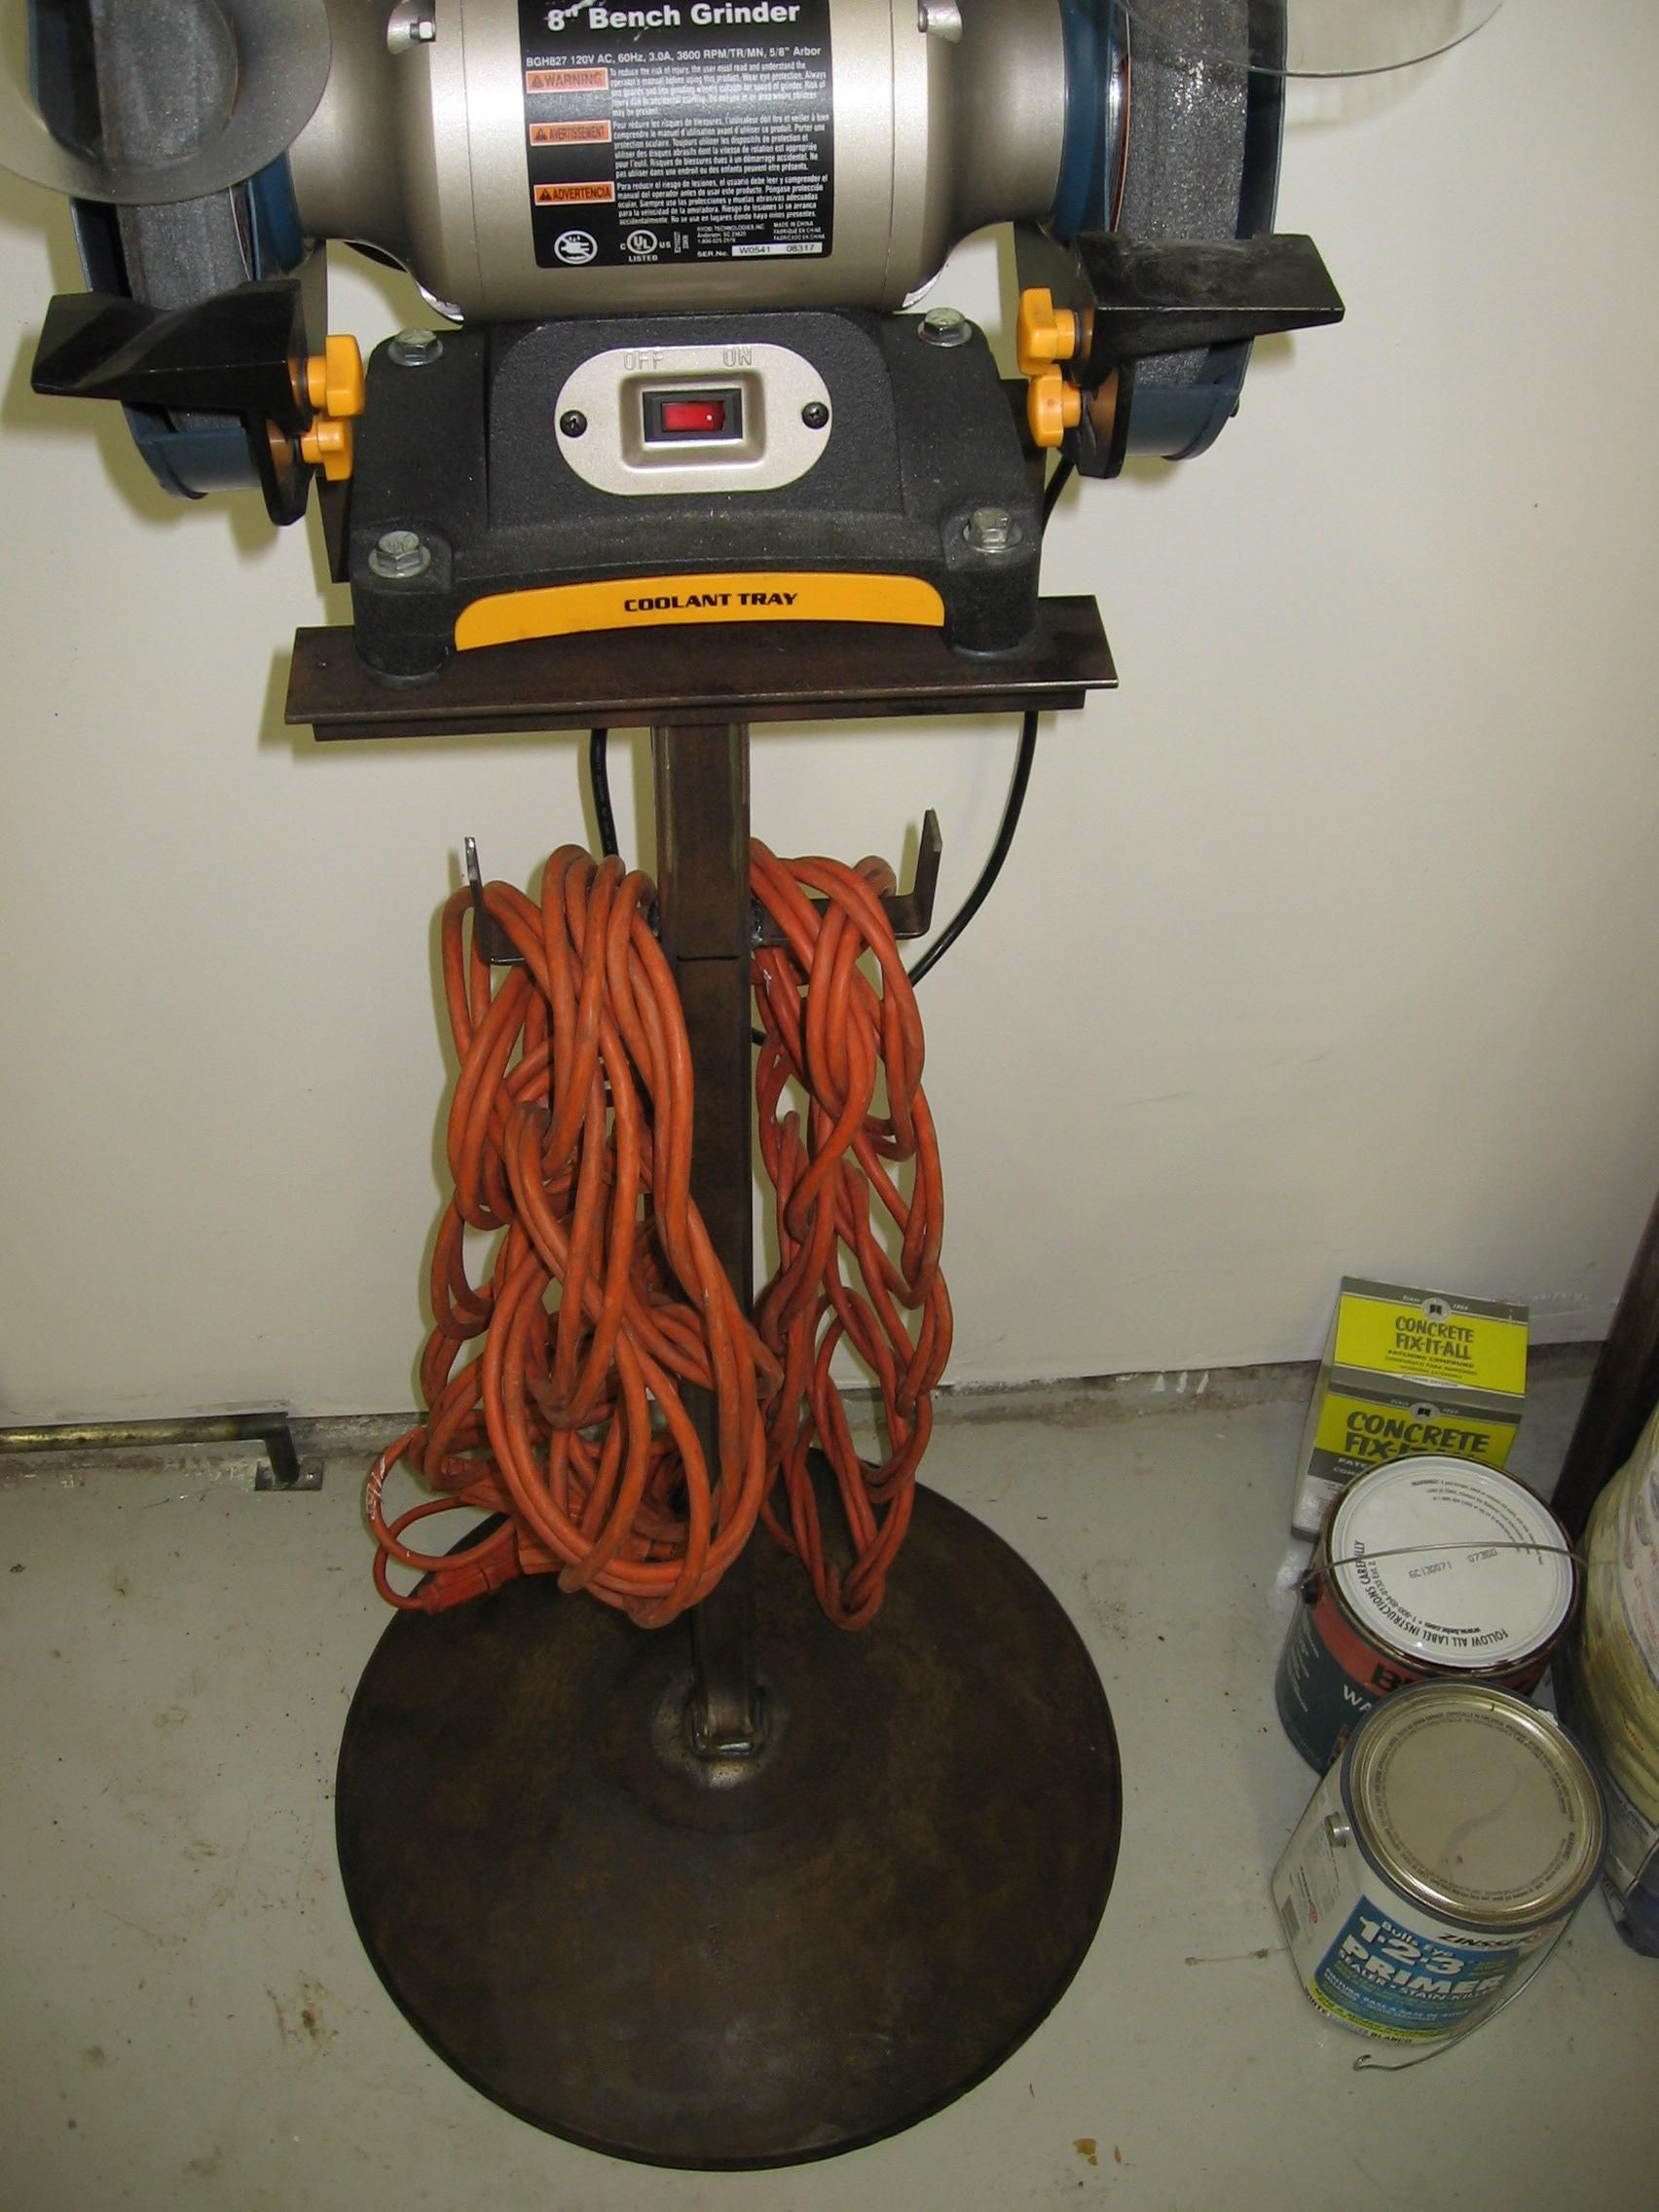 Phenomenal Bench Grinder Stand Miller Welding Discussion Forums Evergreenethics Interior Chair Design Evergreenethicsorg